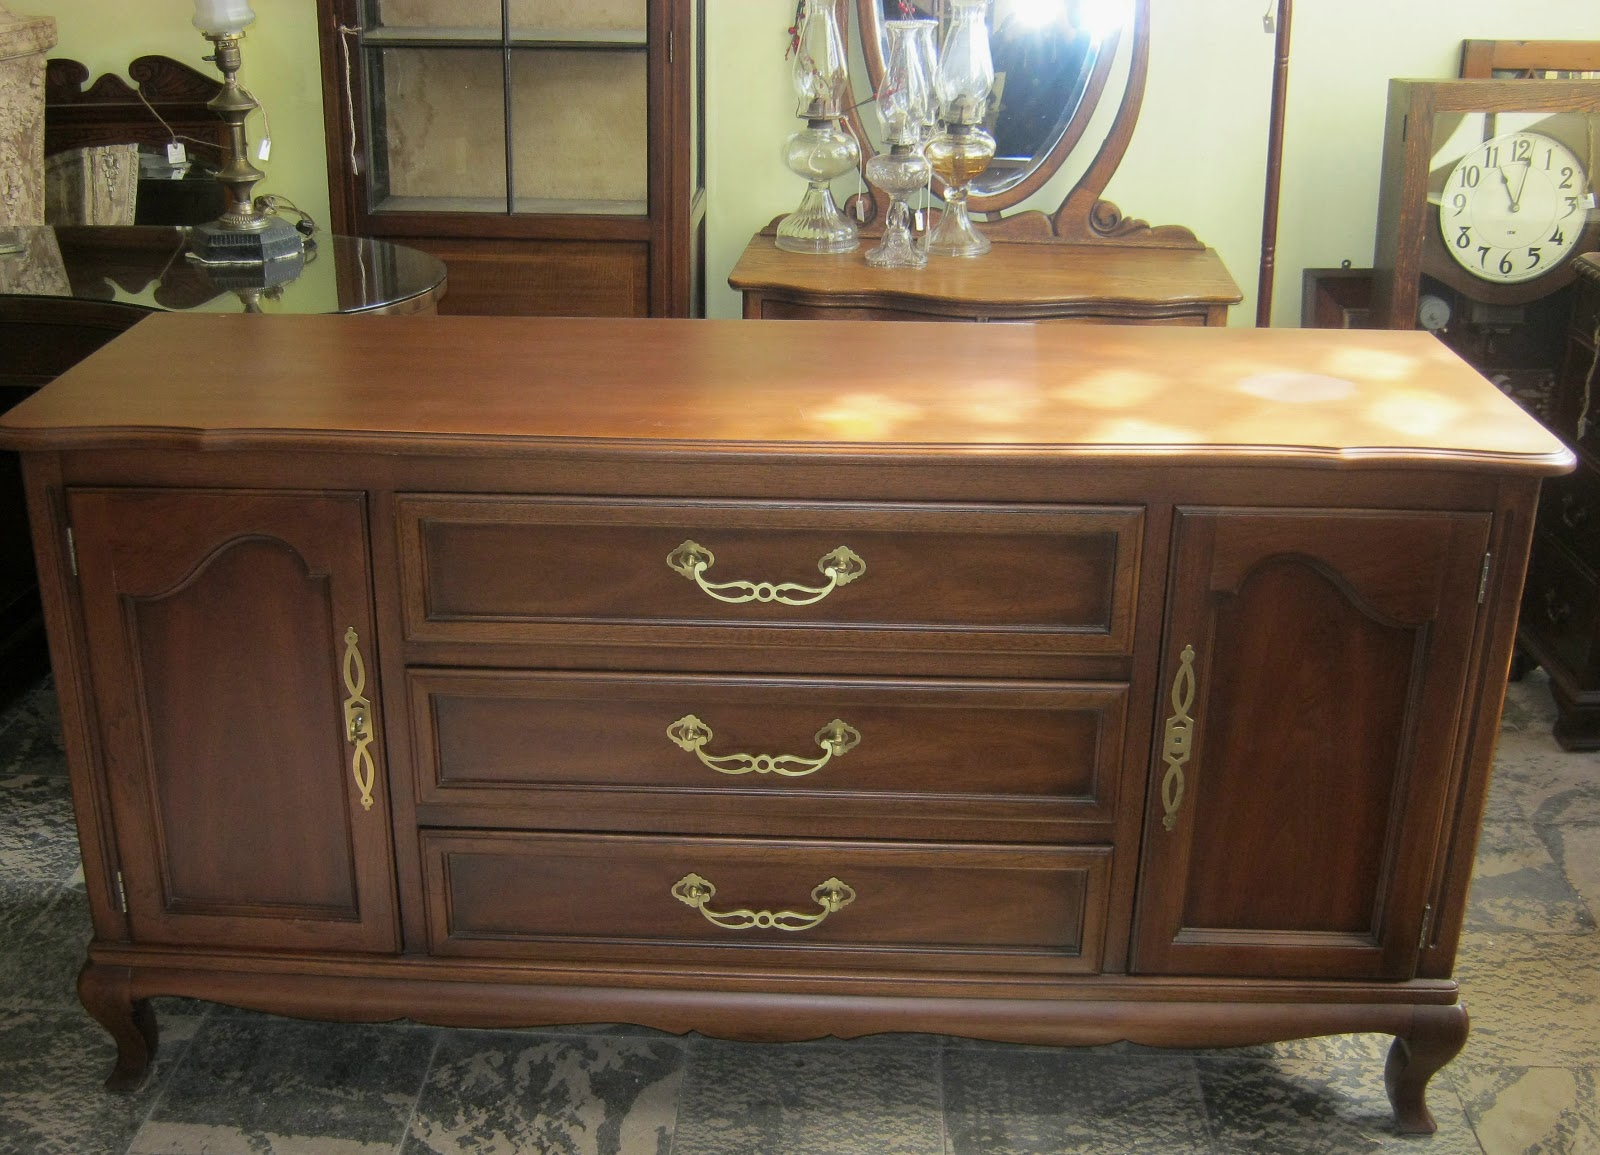 Funk gruven a z french provincial sideboard bathroom French provincial bathroom vanities